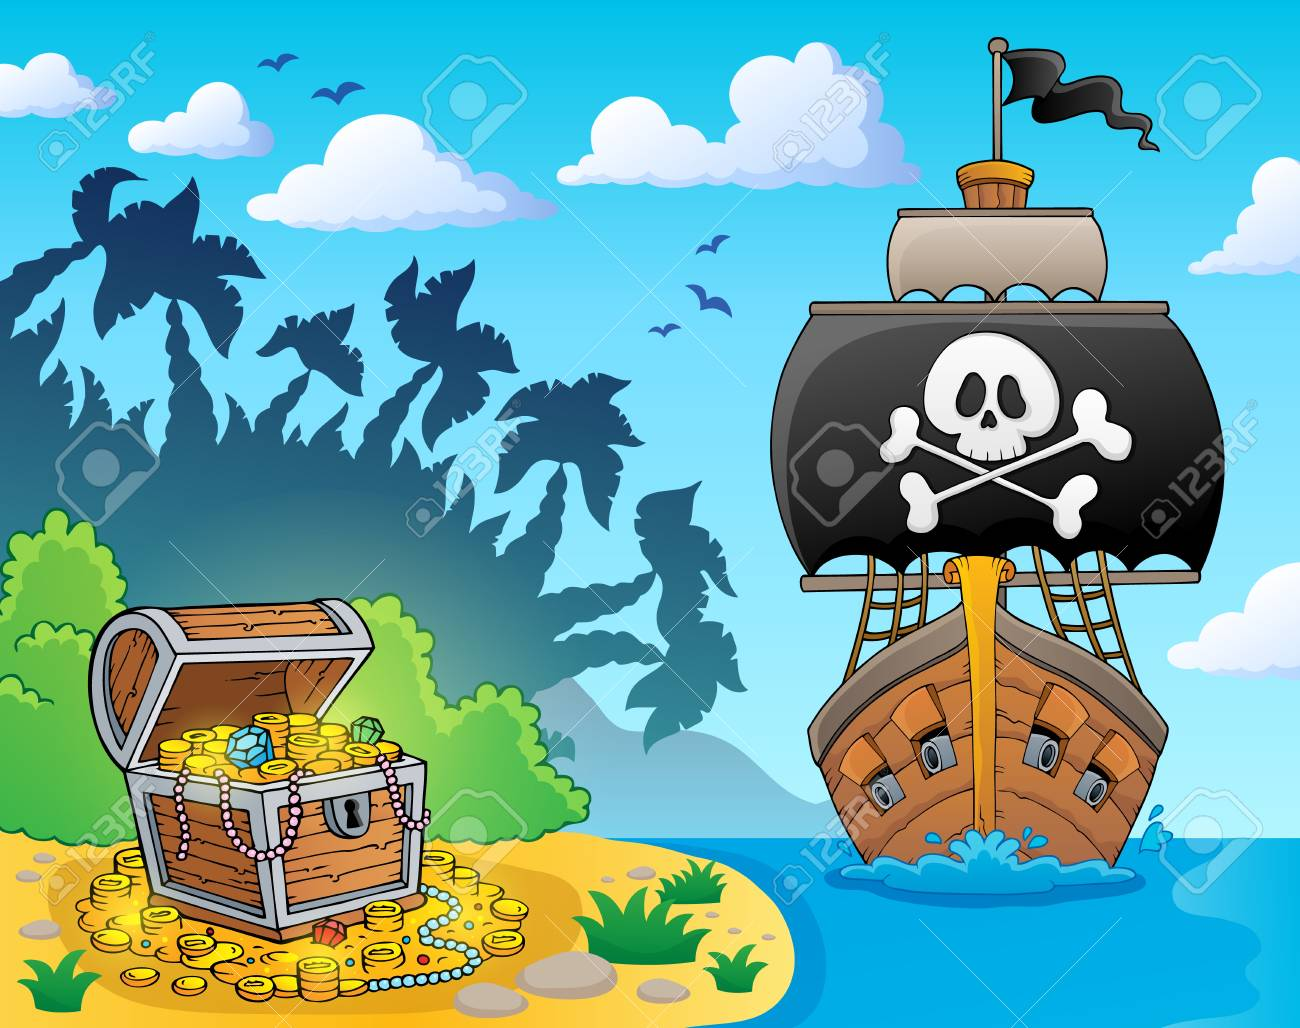 Image with pirate vessel theme 3 - eps10 vector illustration. - 125710903